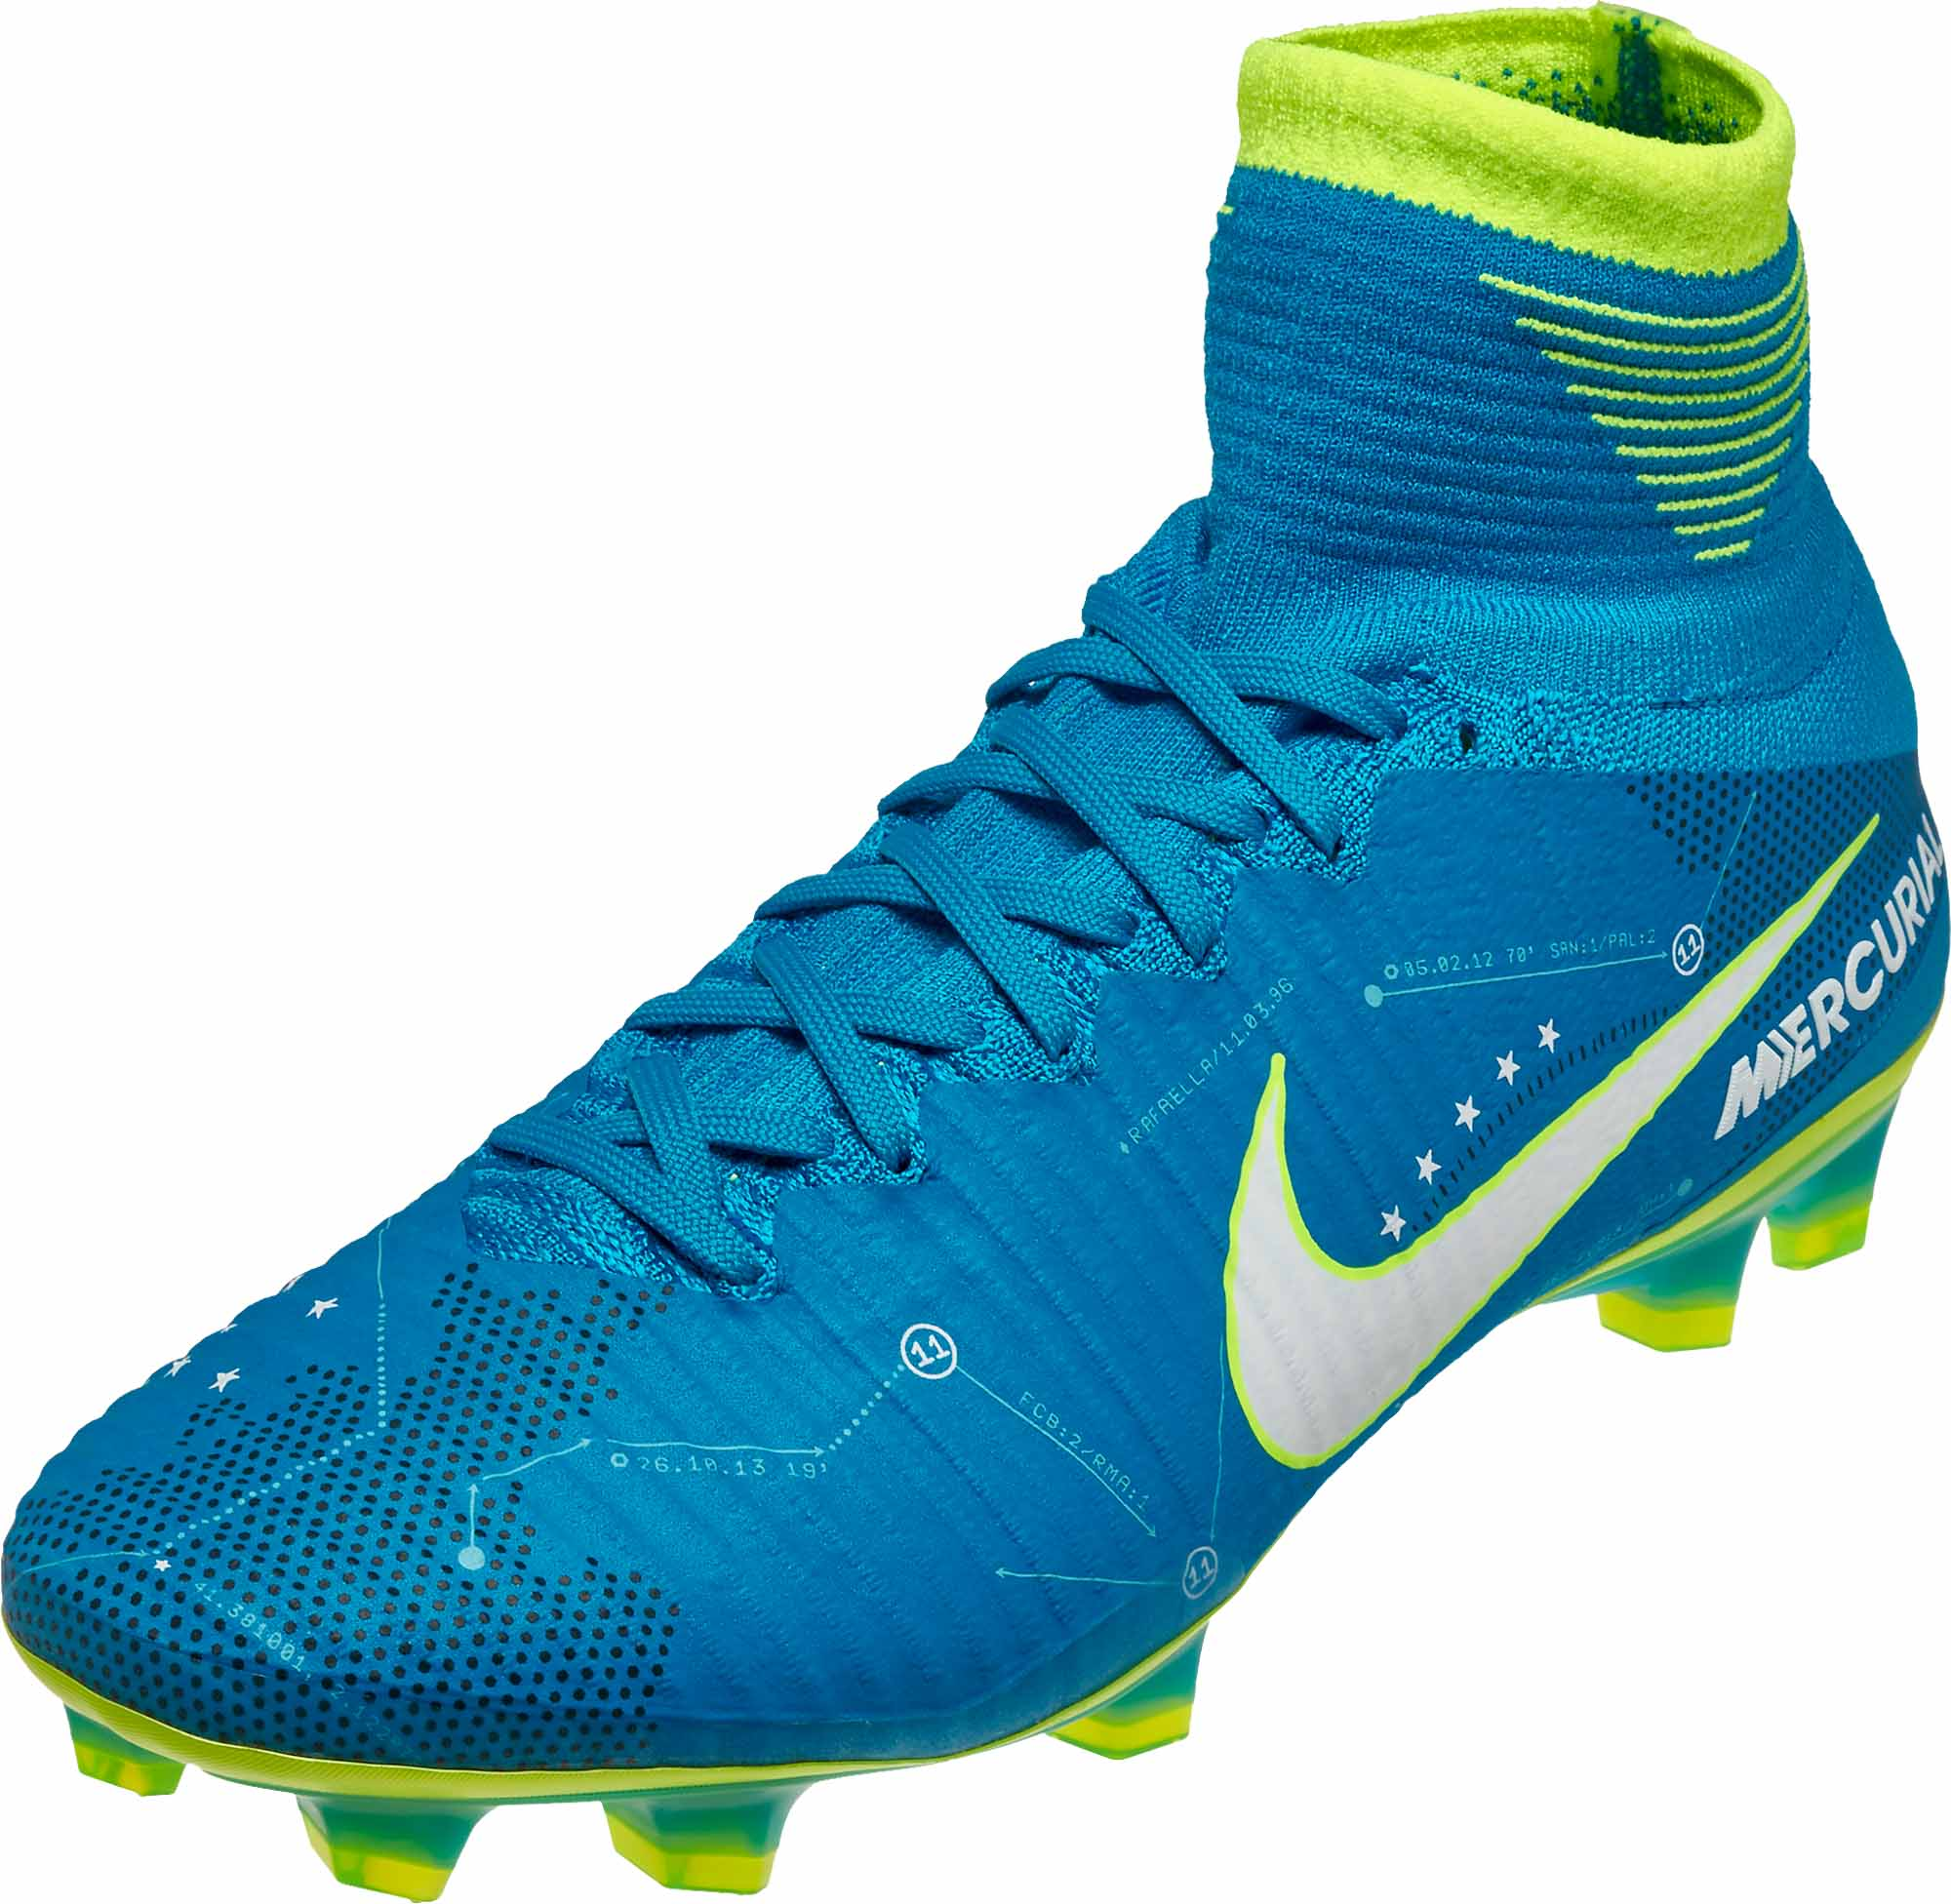 Nike Mercurial Superfly V SX FG – Neymar – Blue Orbit White bec8ad5e7